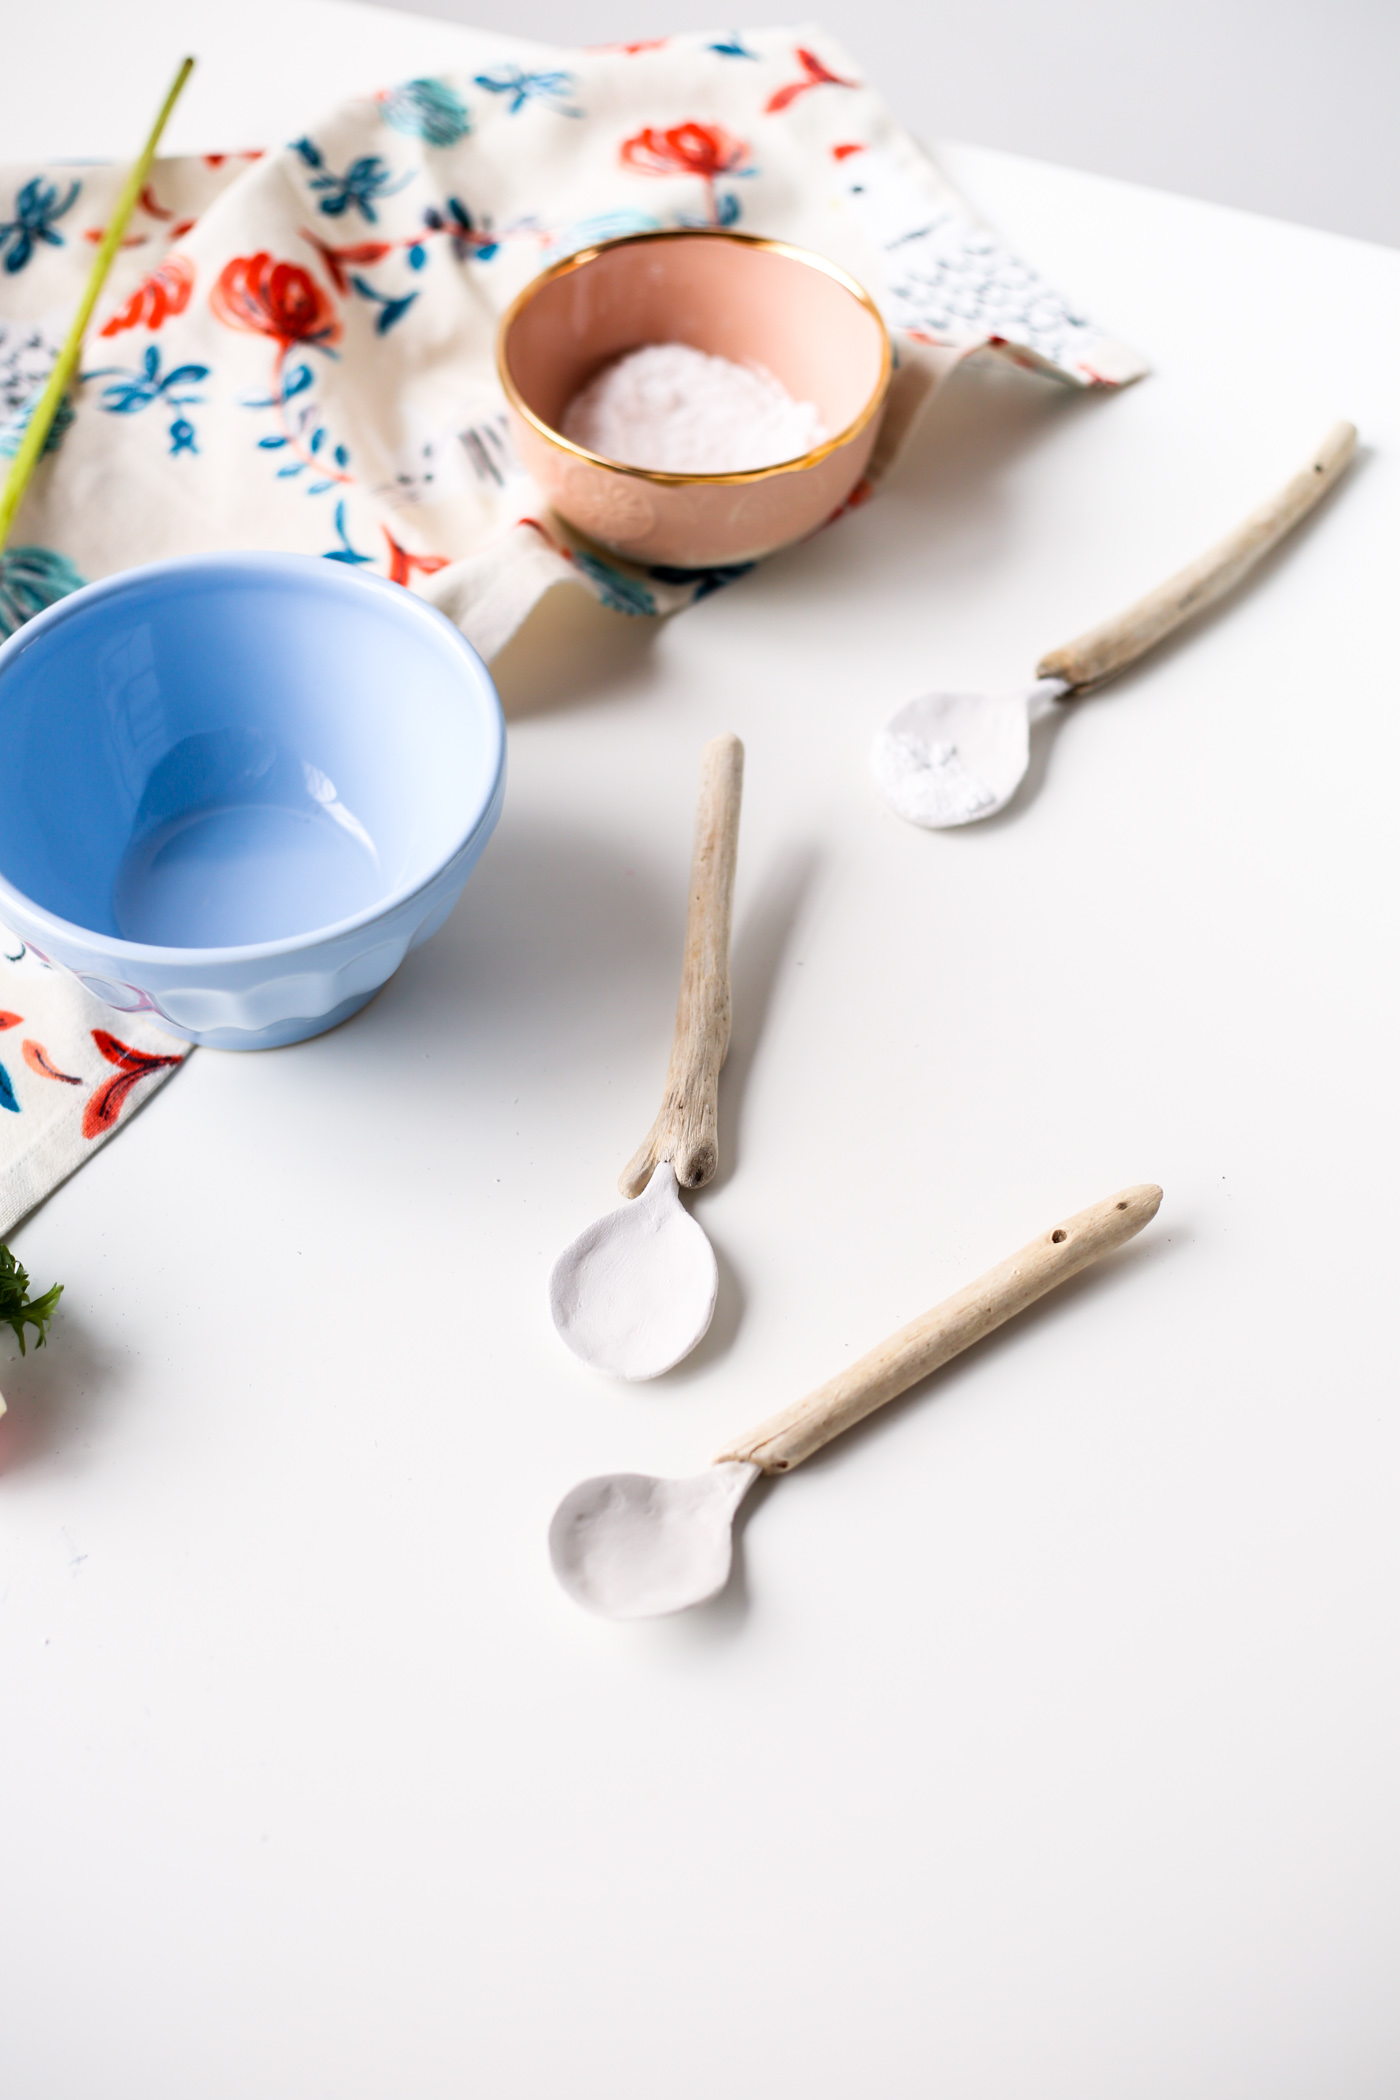 DIY Clay and Driftwood Spoons